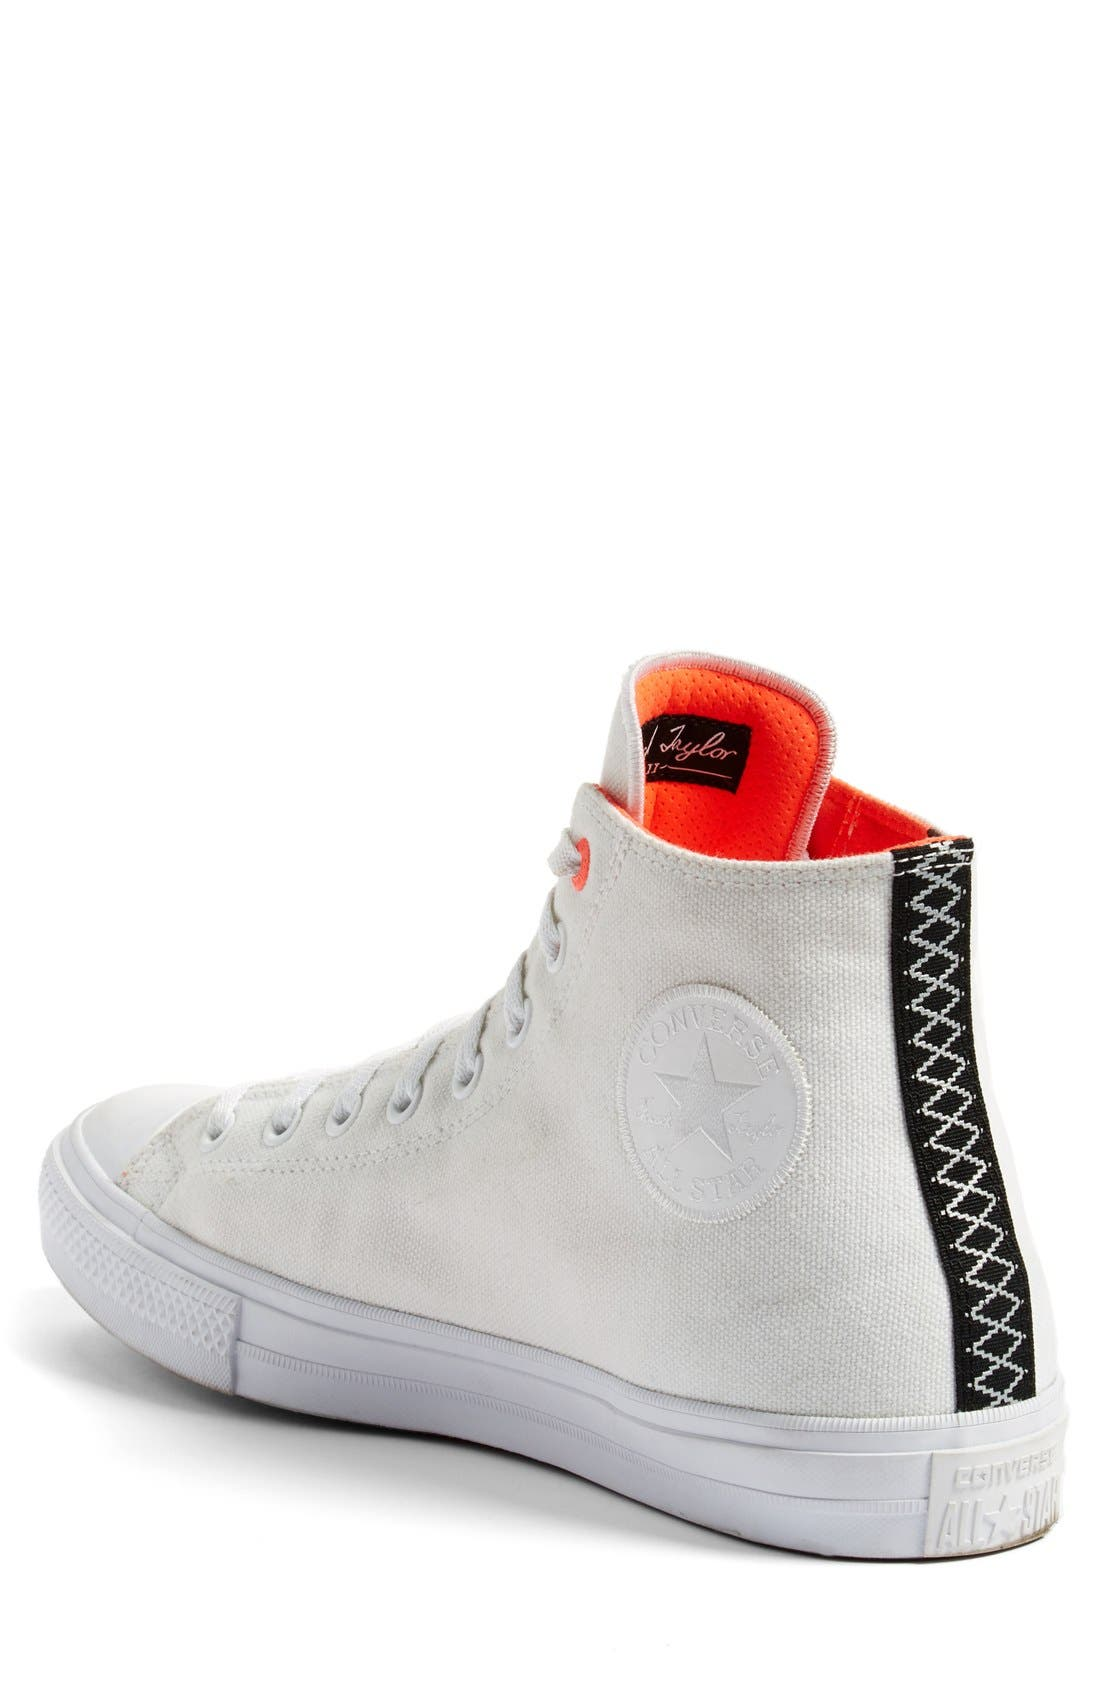 Alternate Image 2  - Converse Chuck Taylor® All Star® II 'Shield' Water Repellent High Top Sneaker (Men)